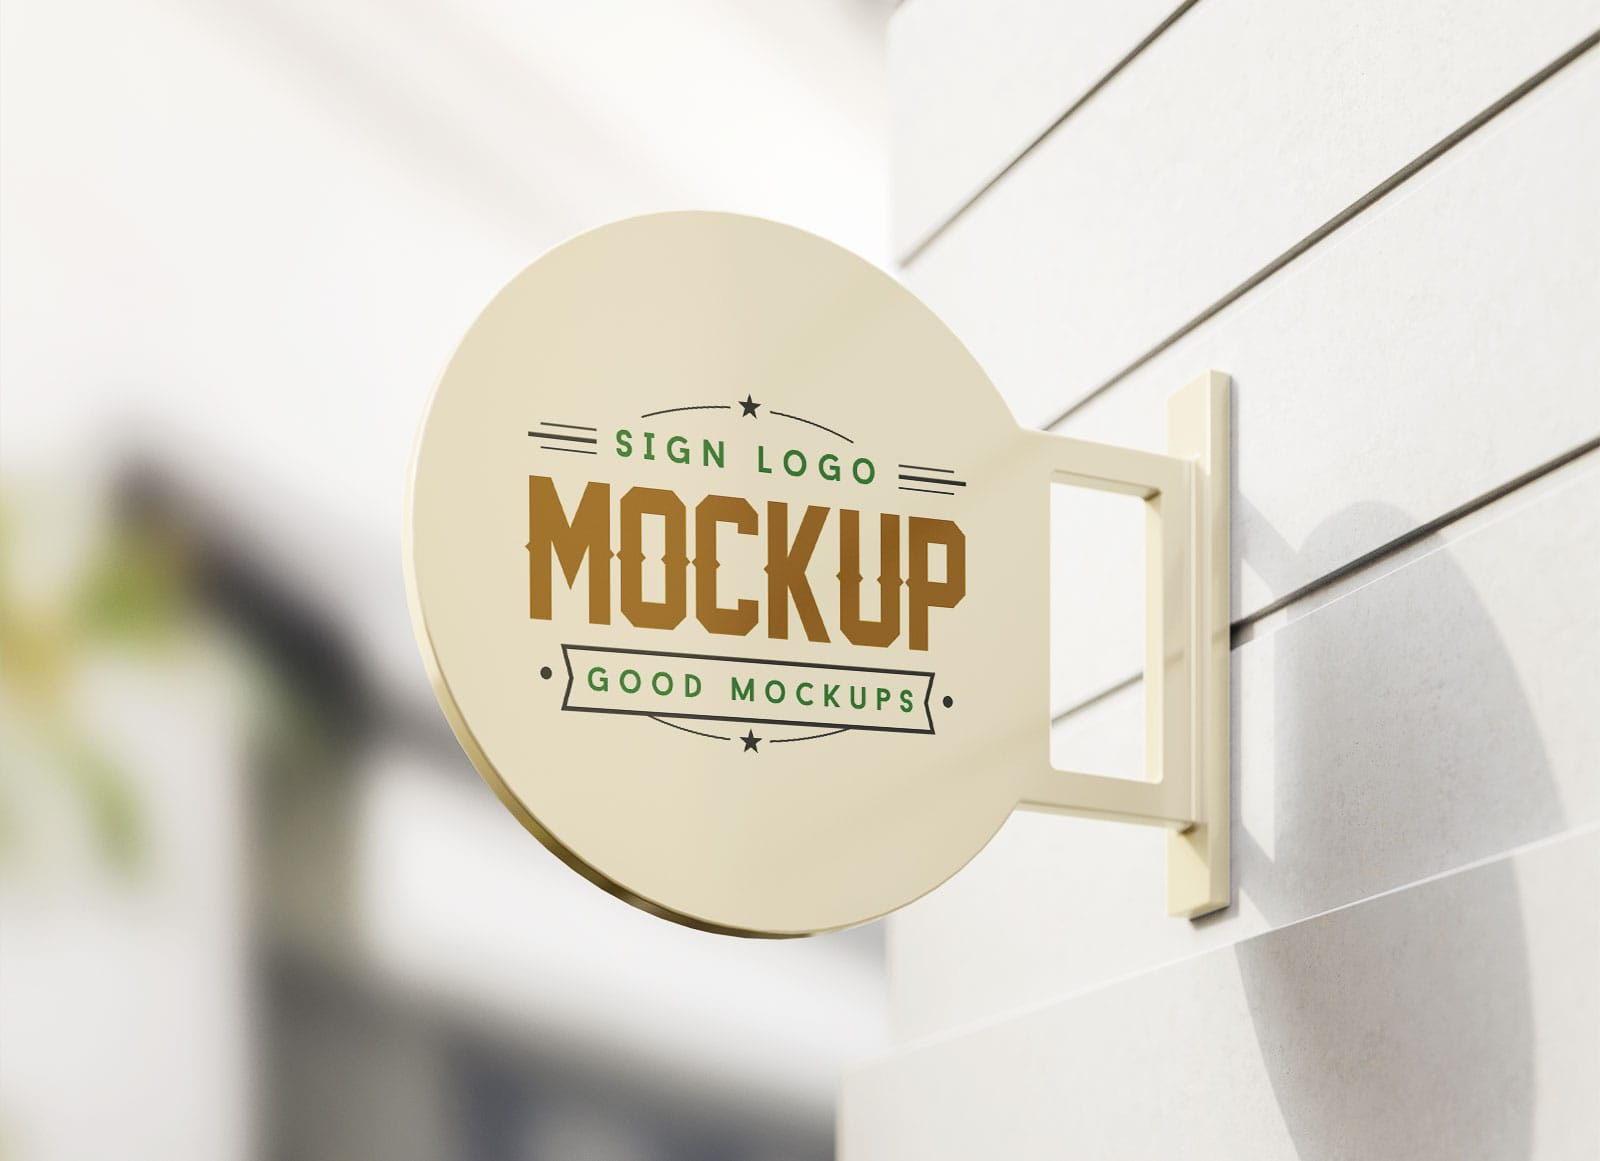 Wall Mounted Round Sign Free PSD Mockup